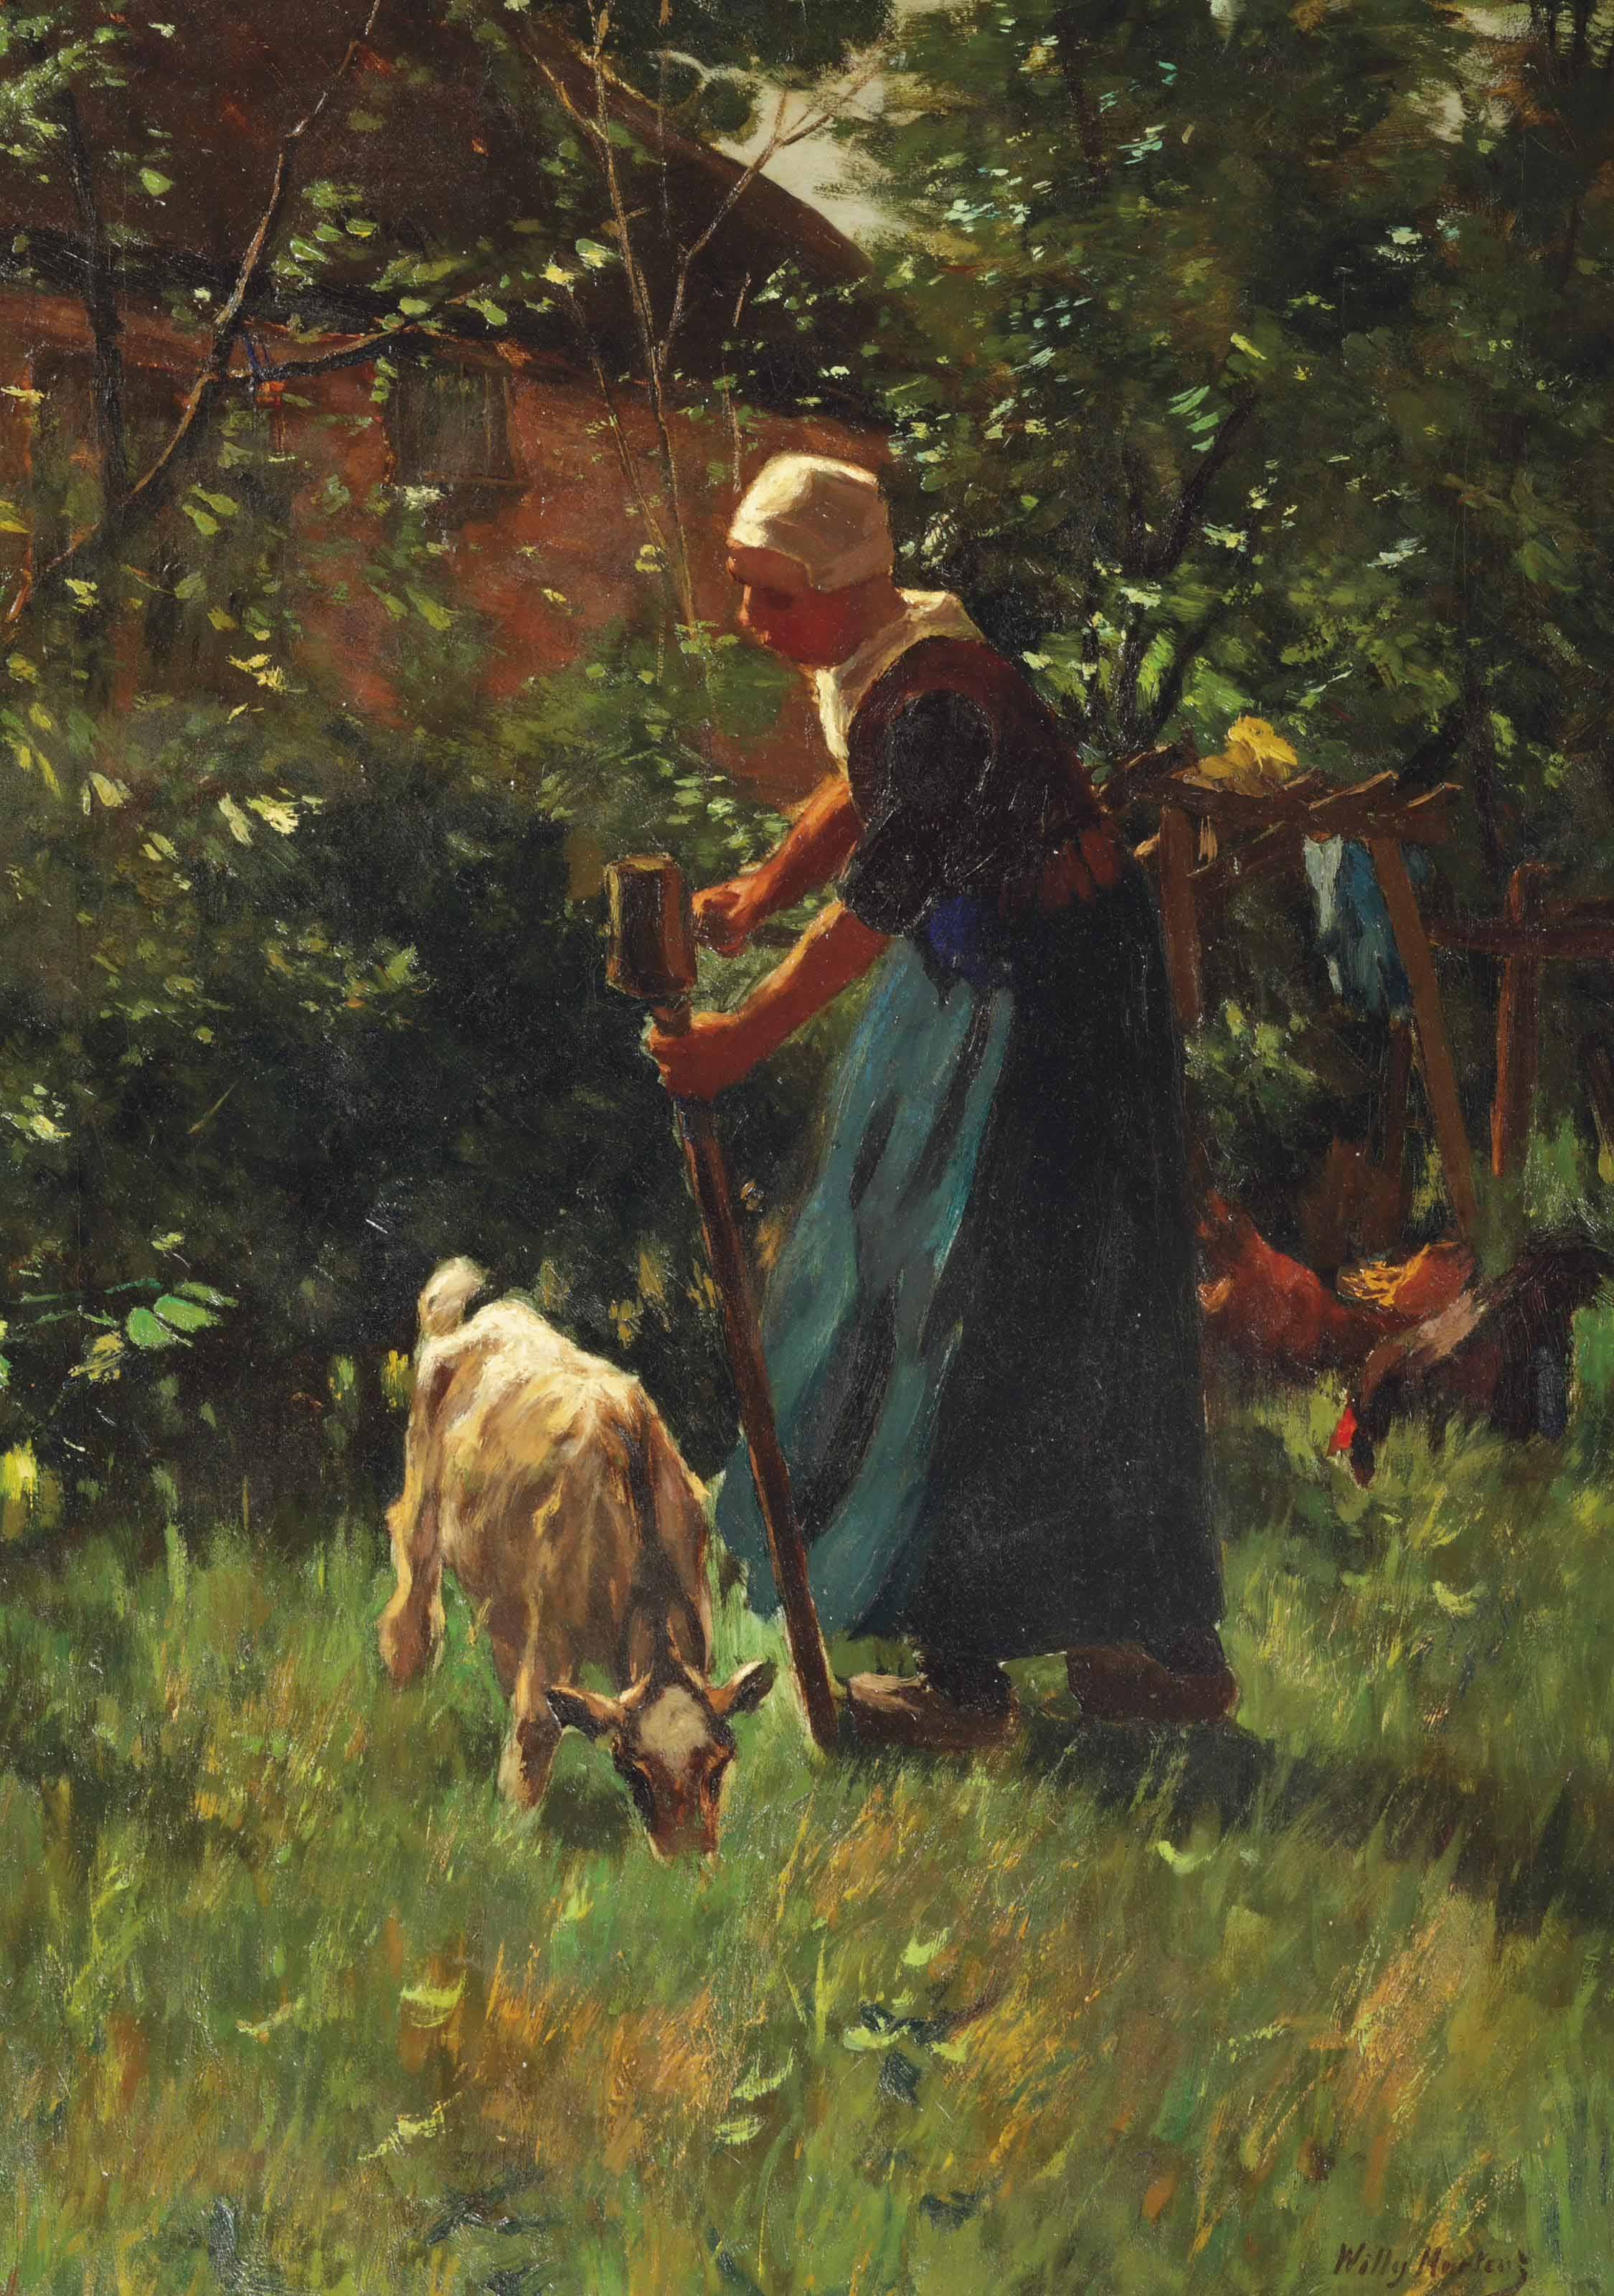 A farmer's wife tending the livestock